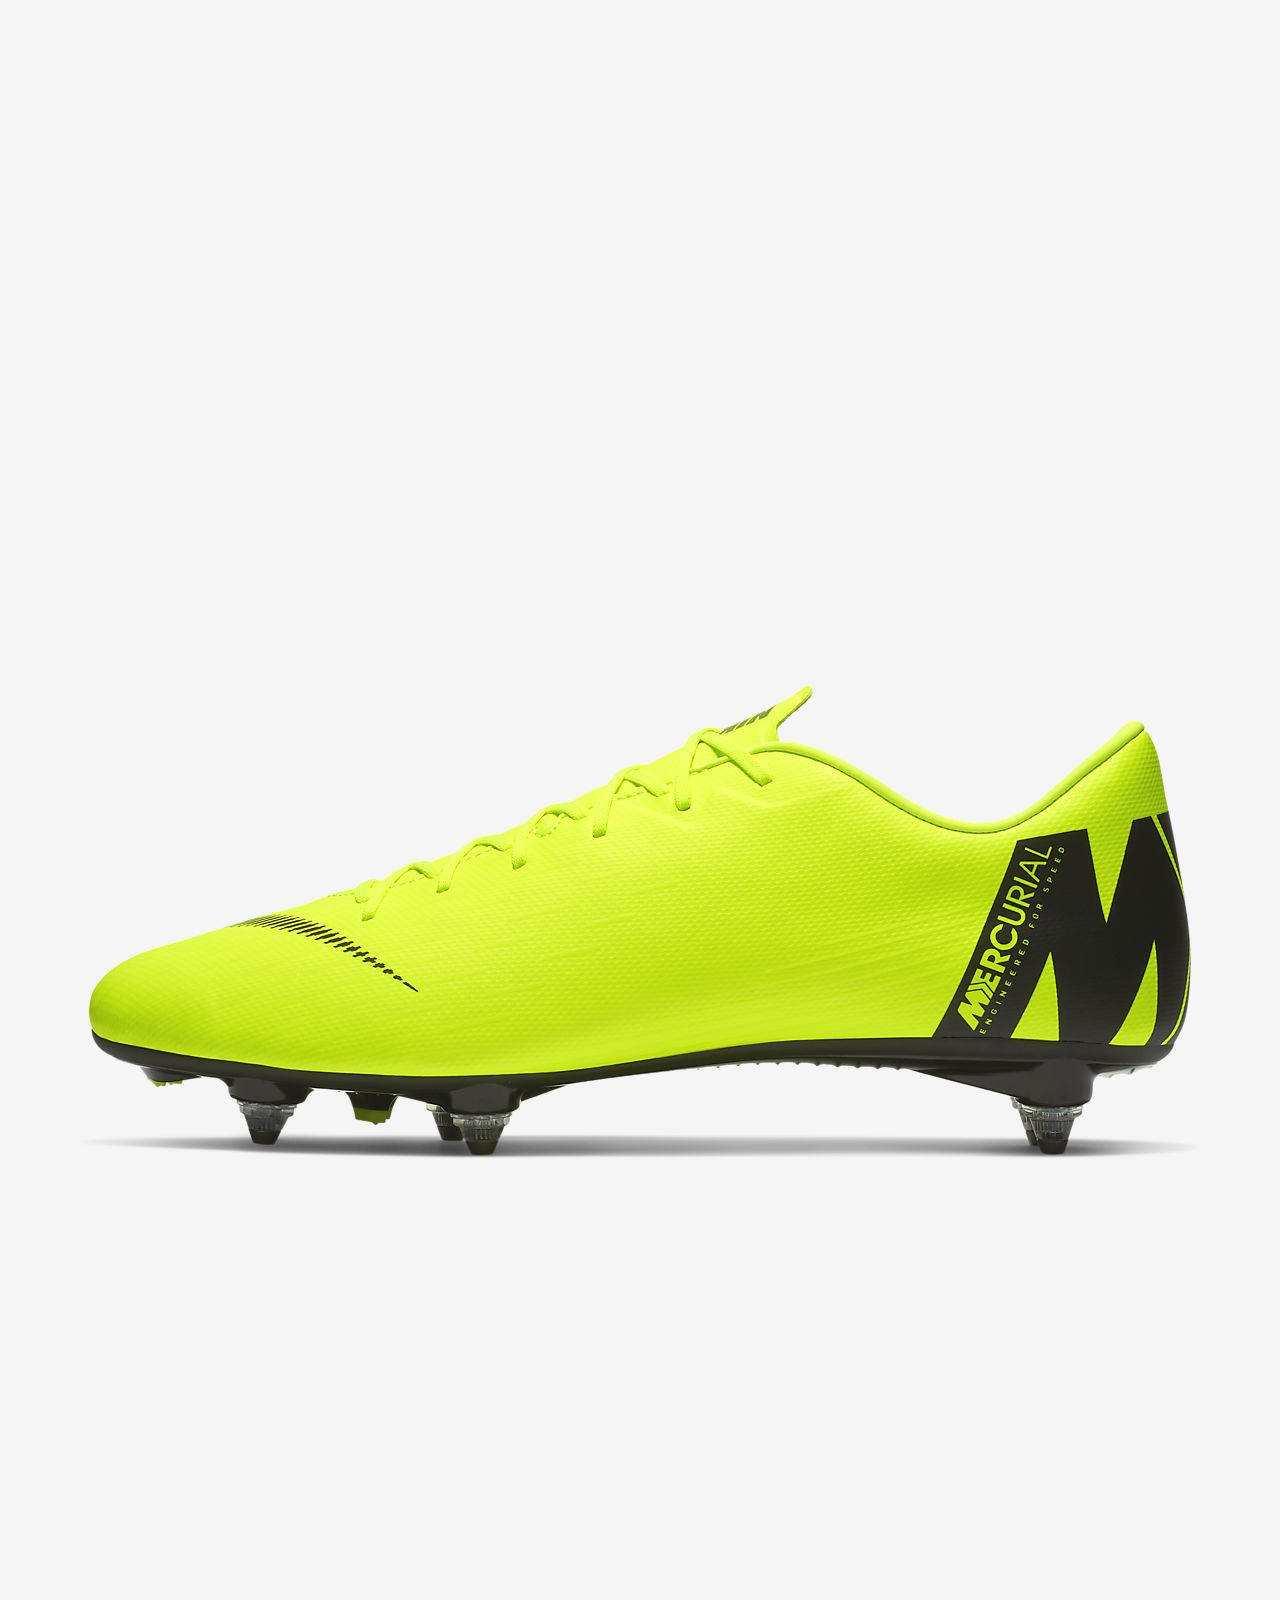 2082e021f Nike Mercurial Vapor XII Academy SG-PRO Soft-Ground Football Boot ...